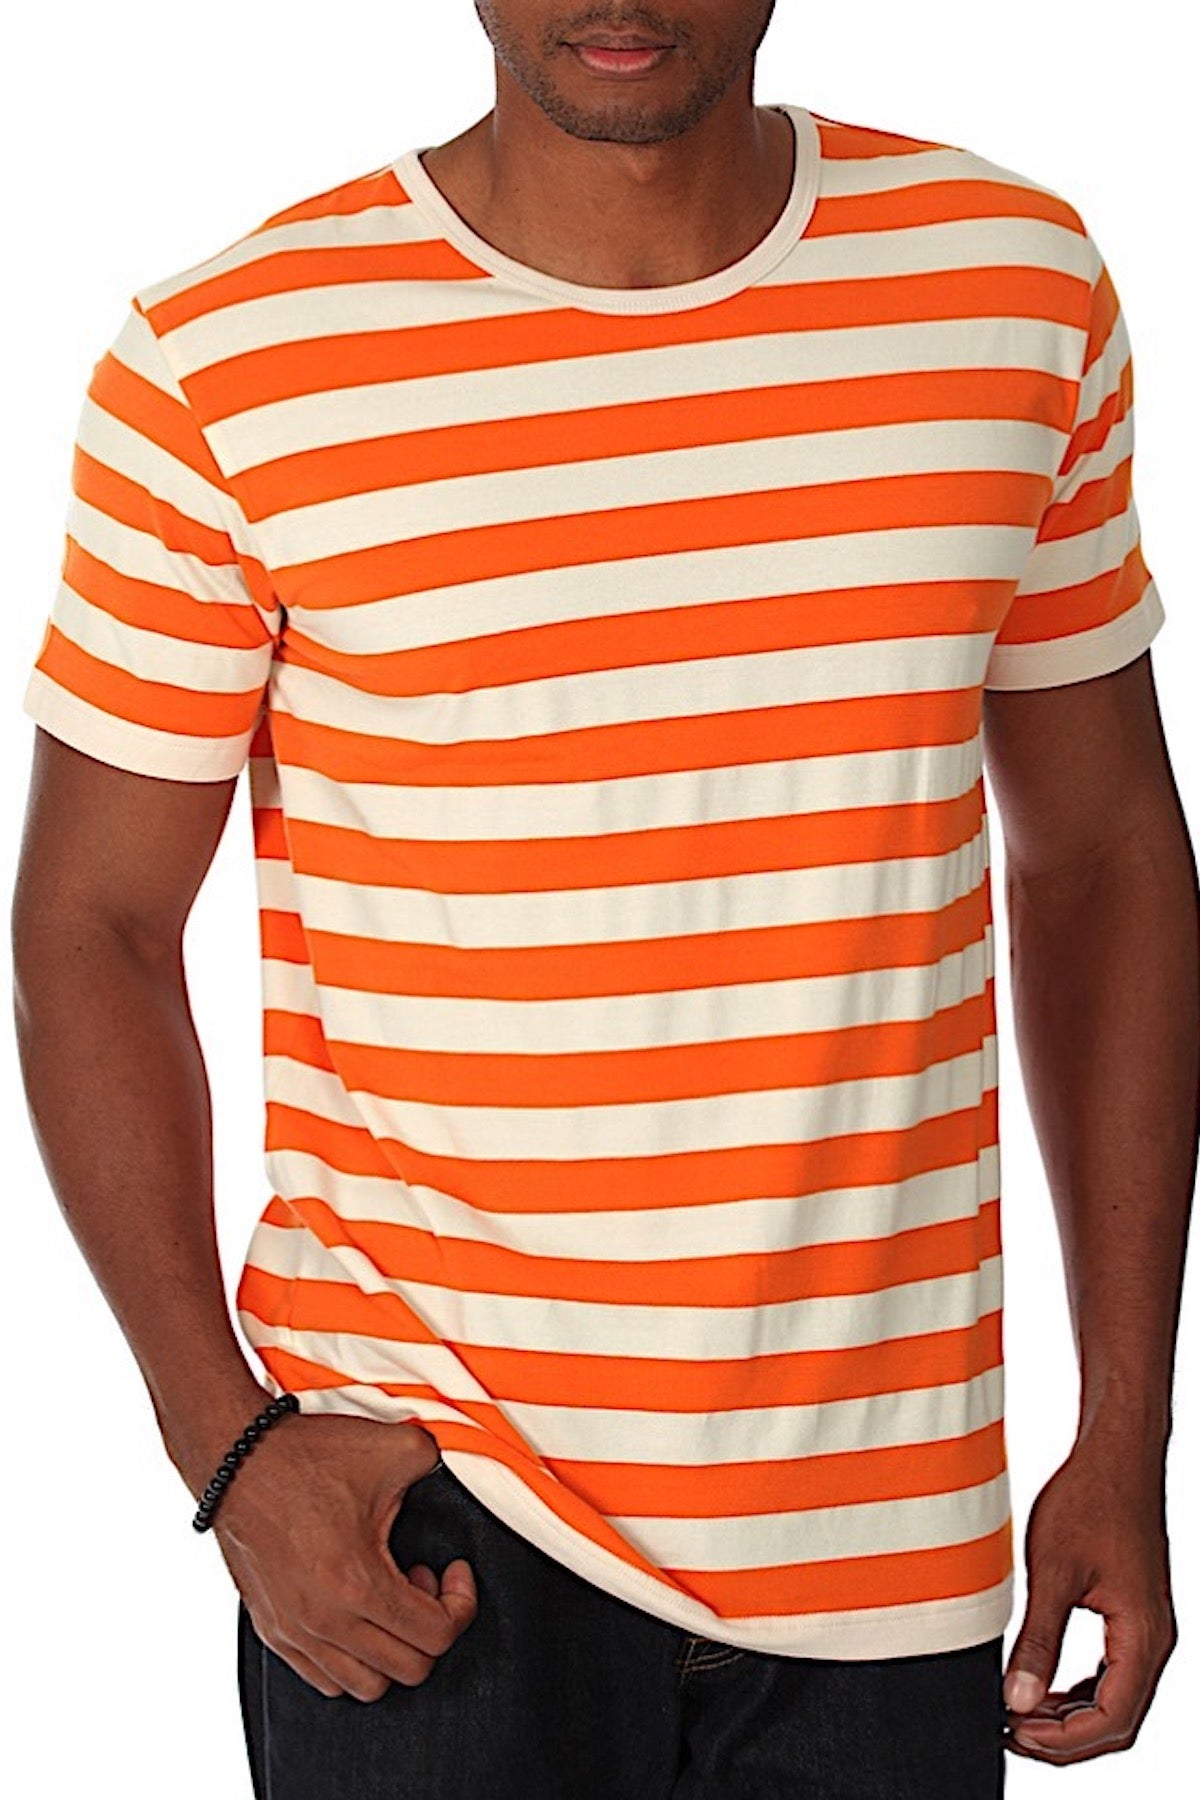 Zutoq Orange Zake Tee